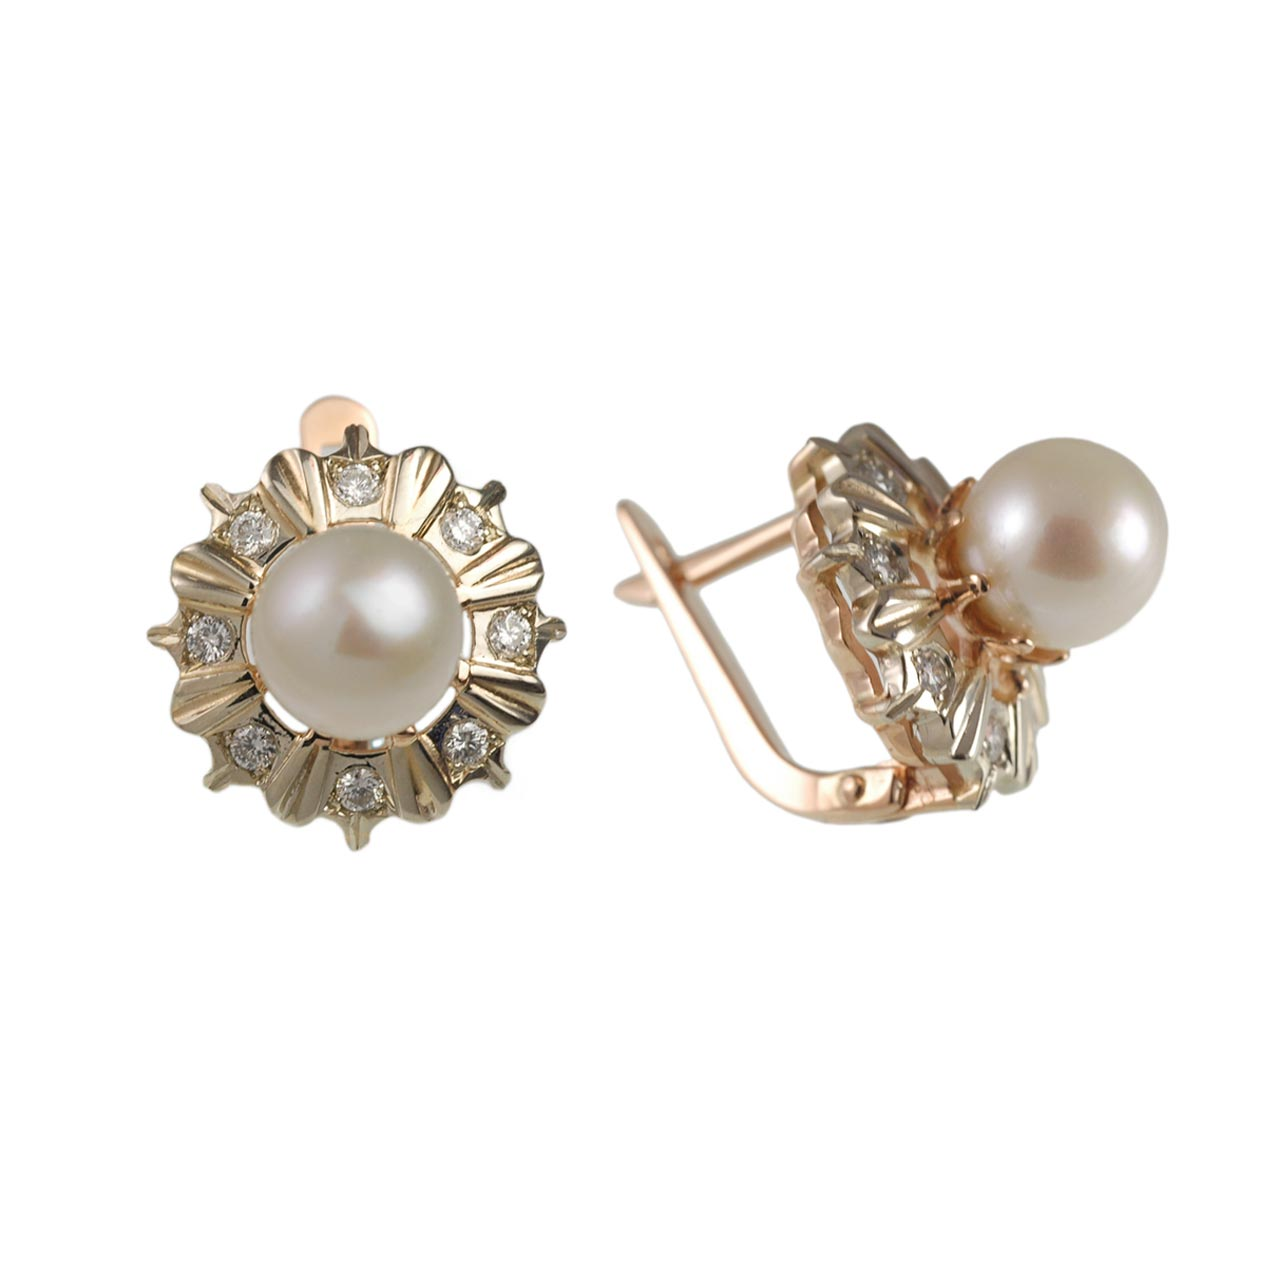 Faberge style grey pearl earrings